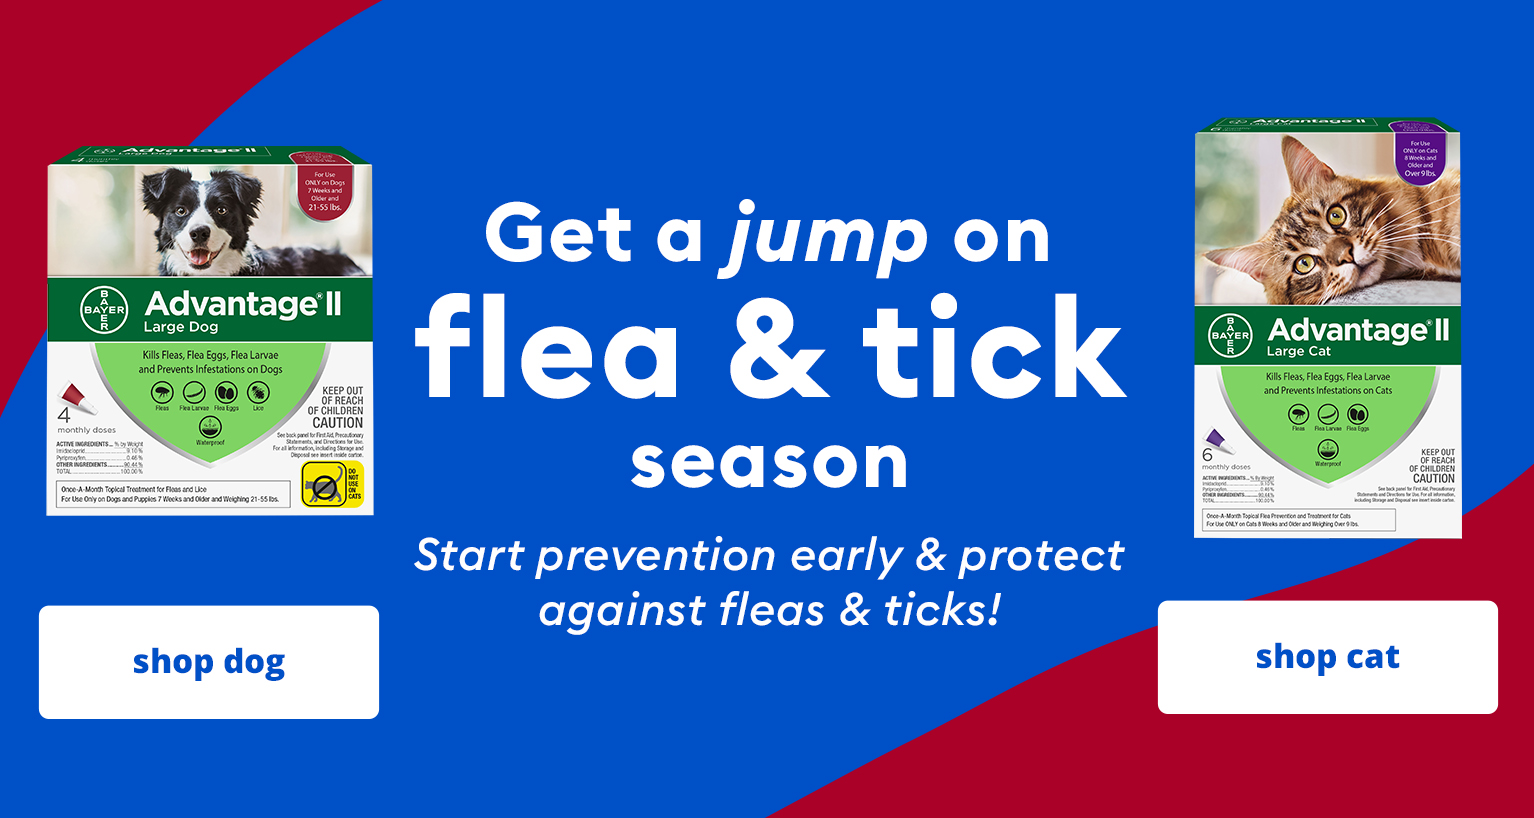 Get a jump on flea & tick season. Start prevention early and protect against fleas & ticks. Shop dog (left) shop cat (right).